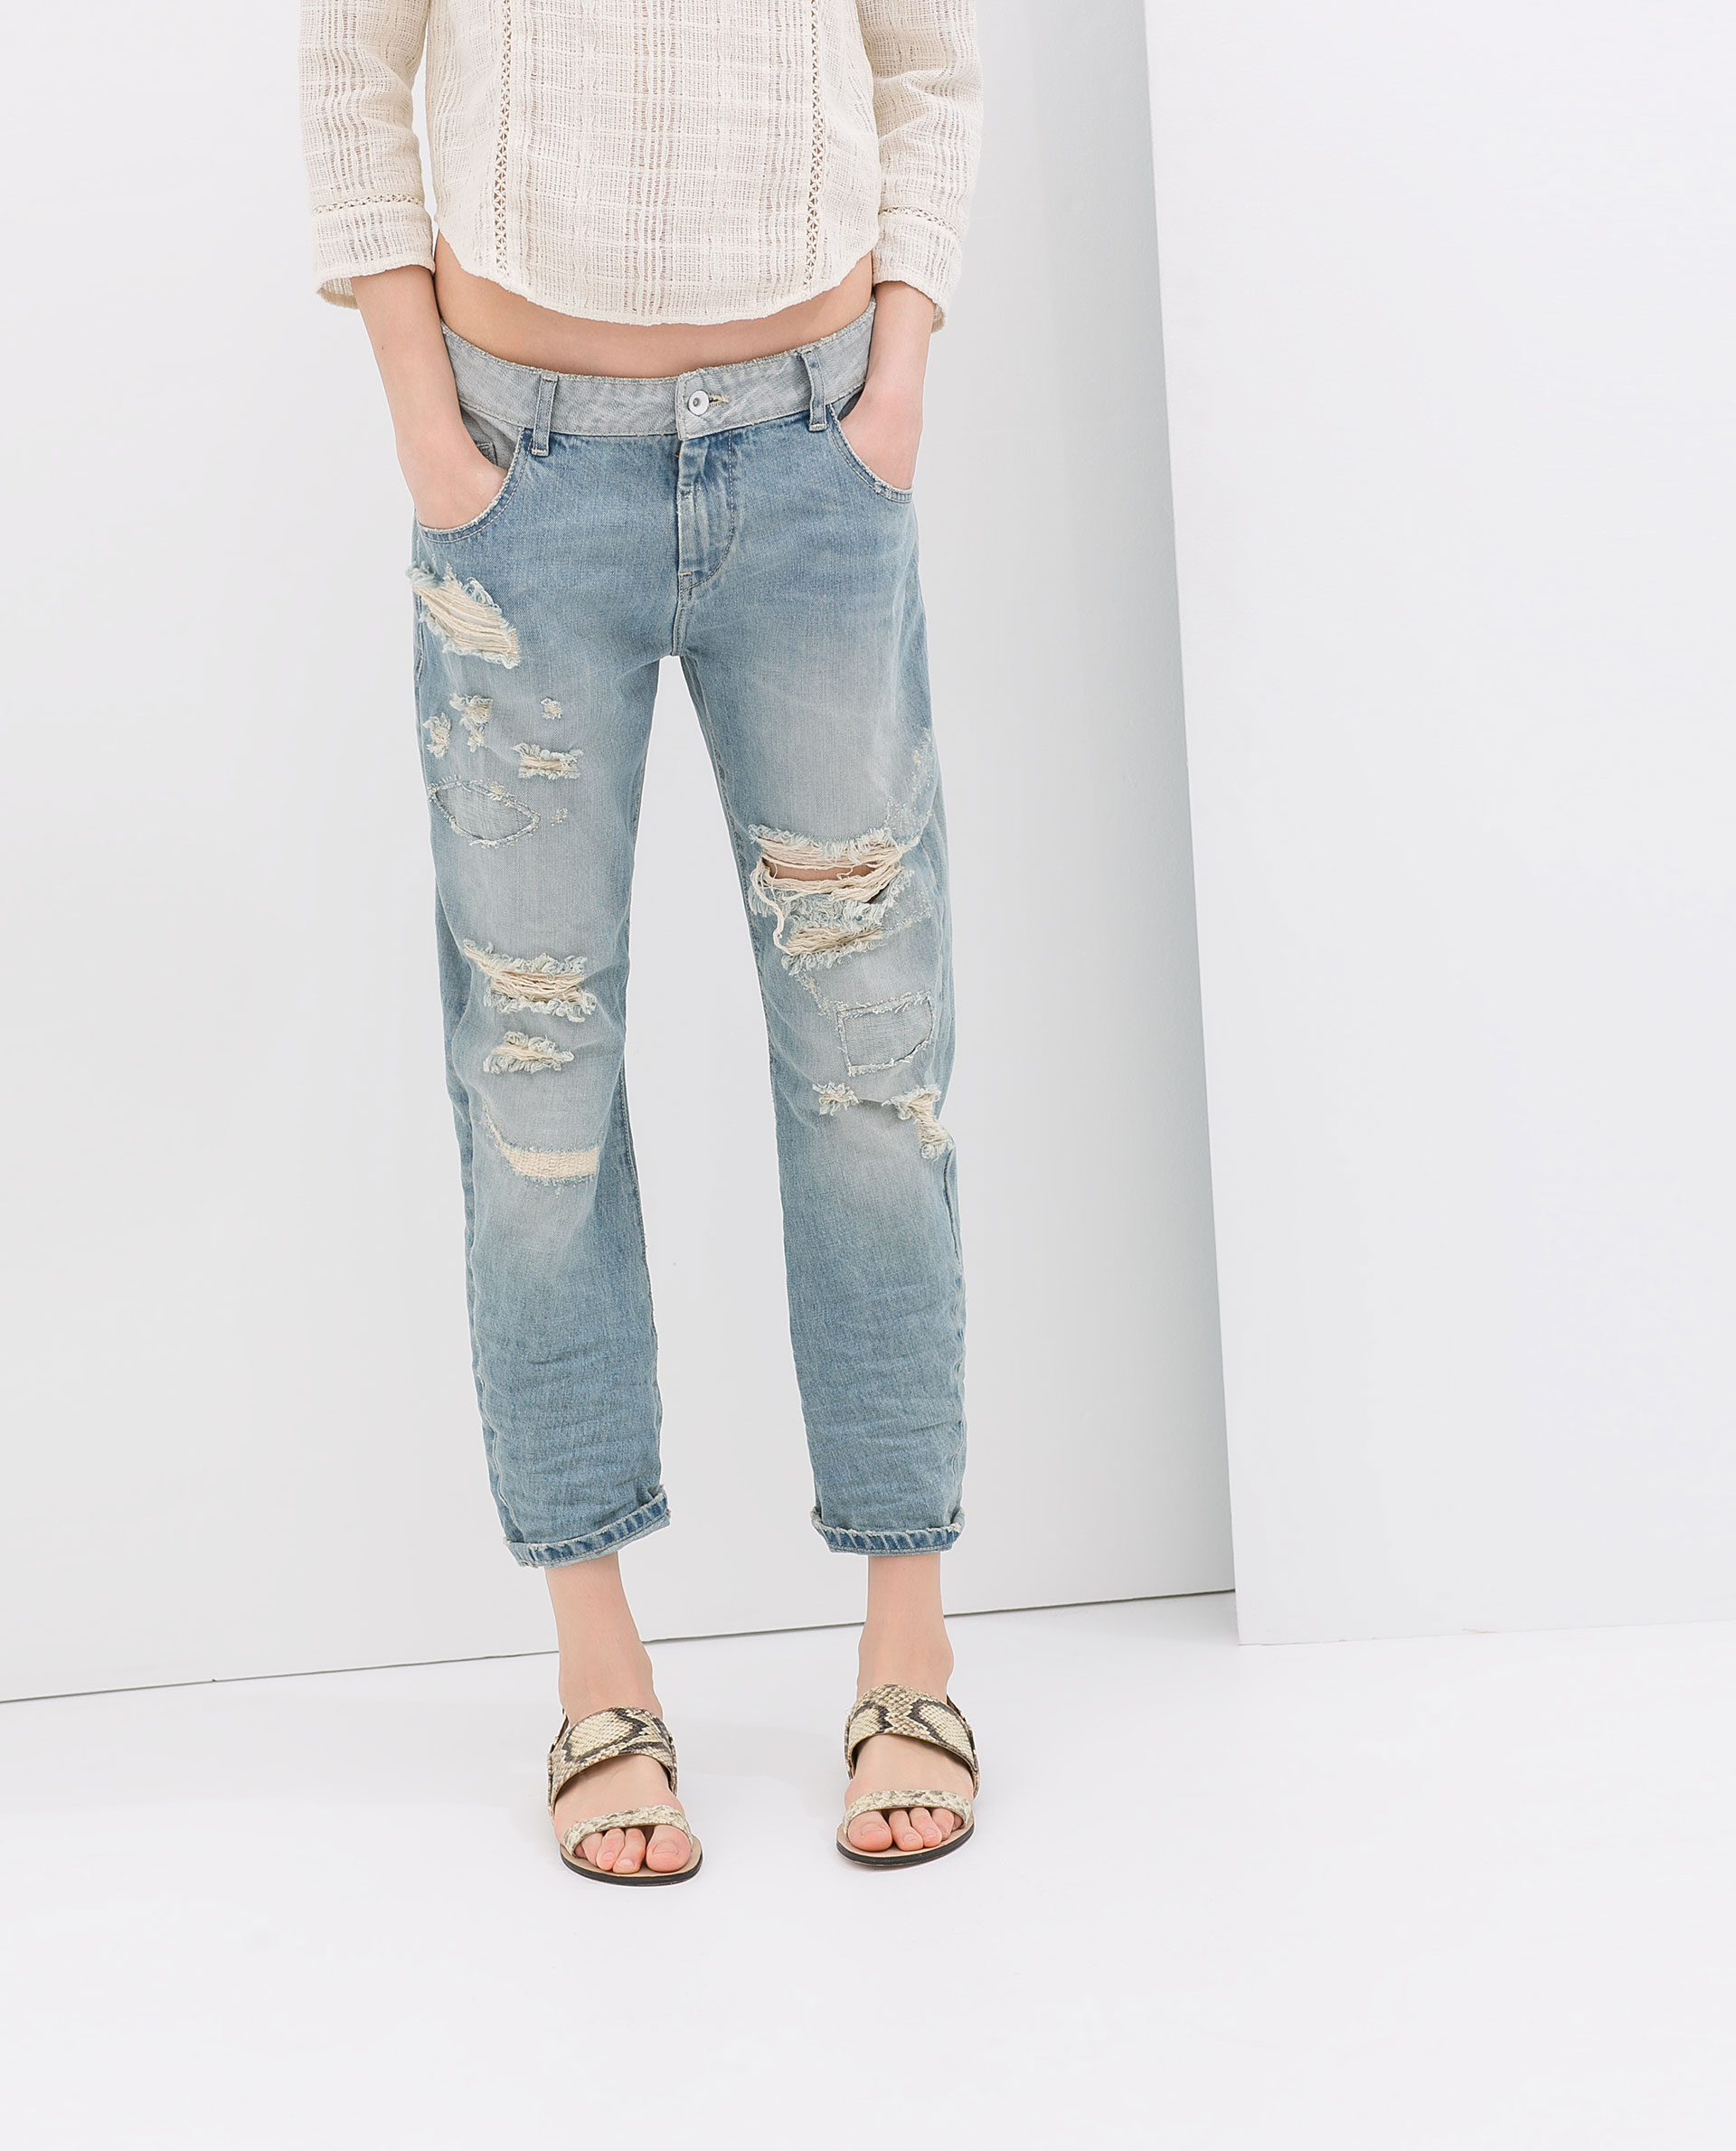 BOYFRIEND JEANS - Jeans - WOMAN - SALE | ZARA Czech Republic